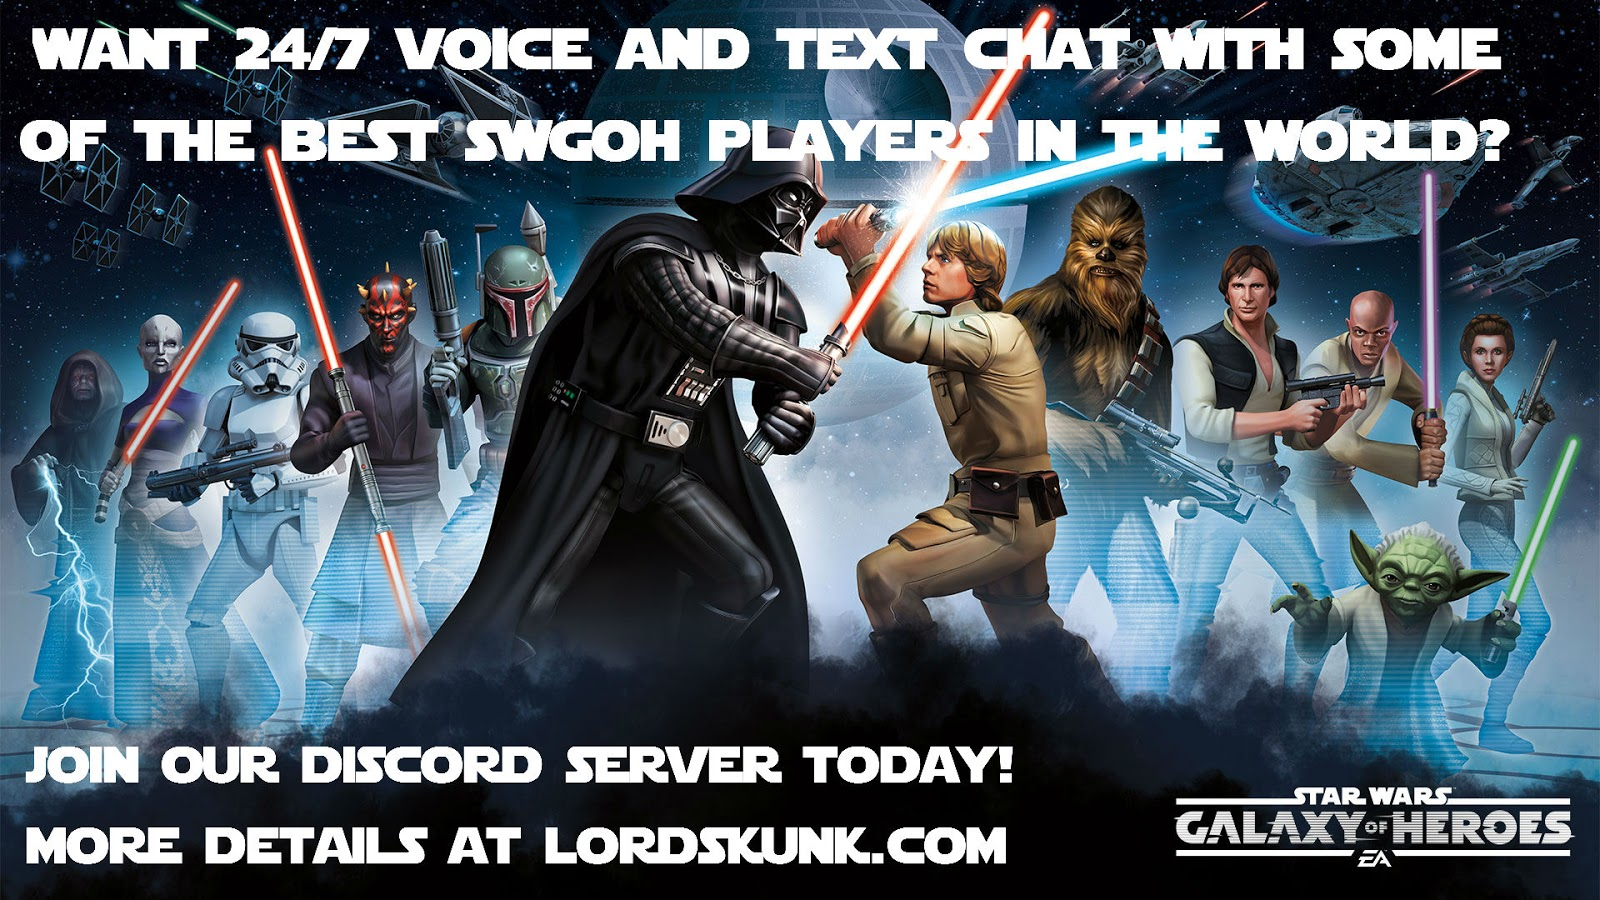 Star Wars: Galaxy of Heroes Blog: LordSkunk com Discord Server